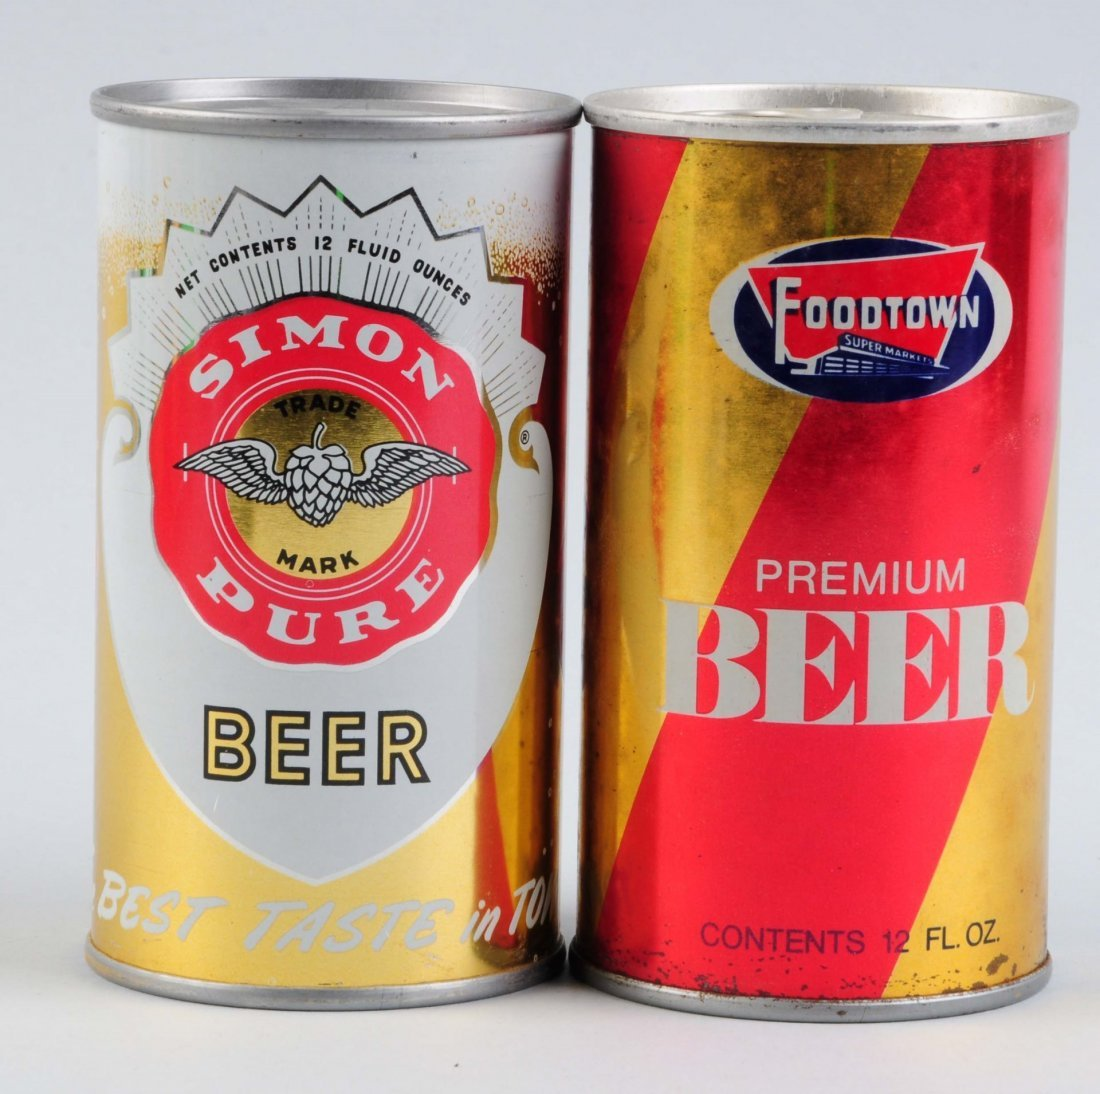 Lot Of 2: Simon & Foodtown Pull Tab & Bank Cans